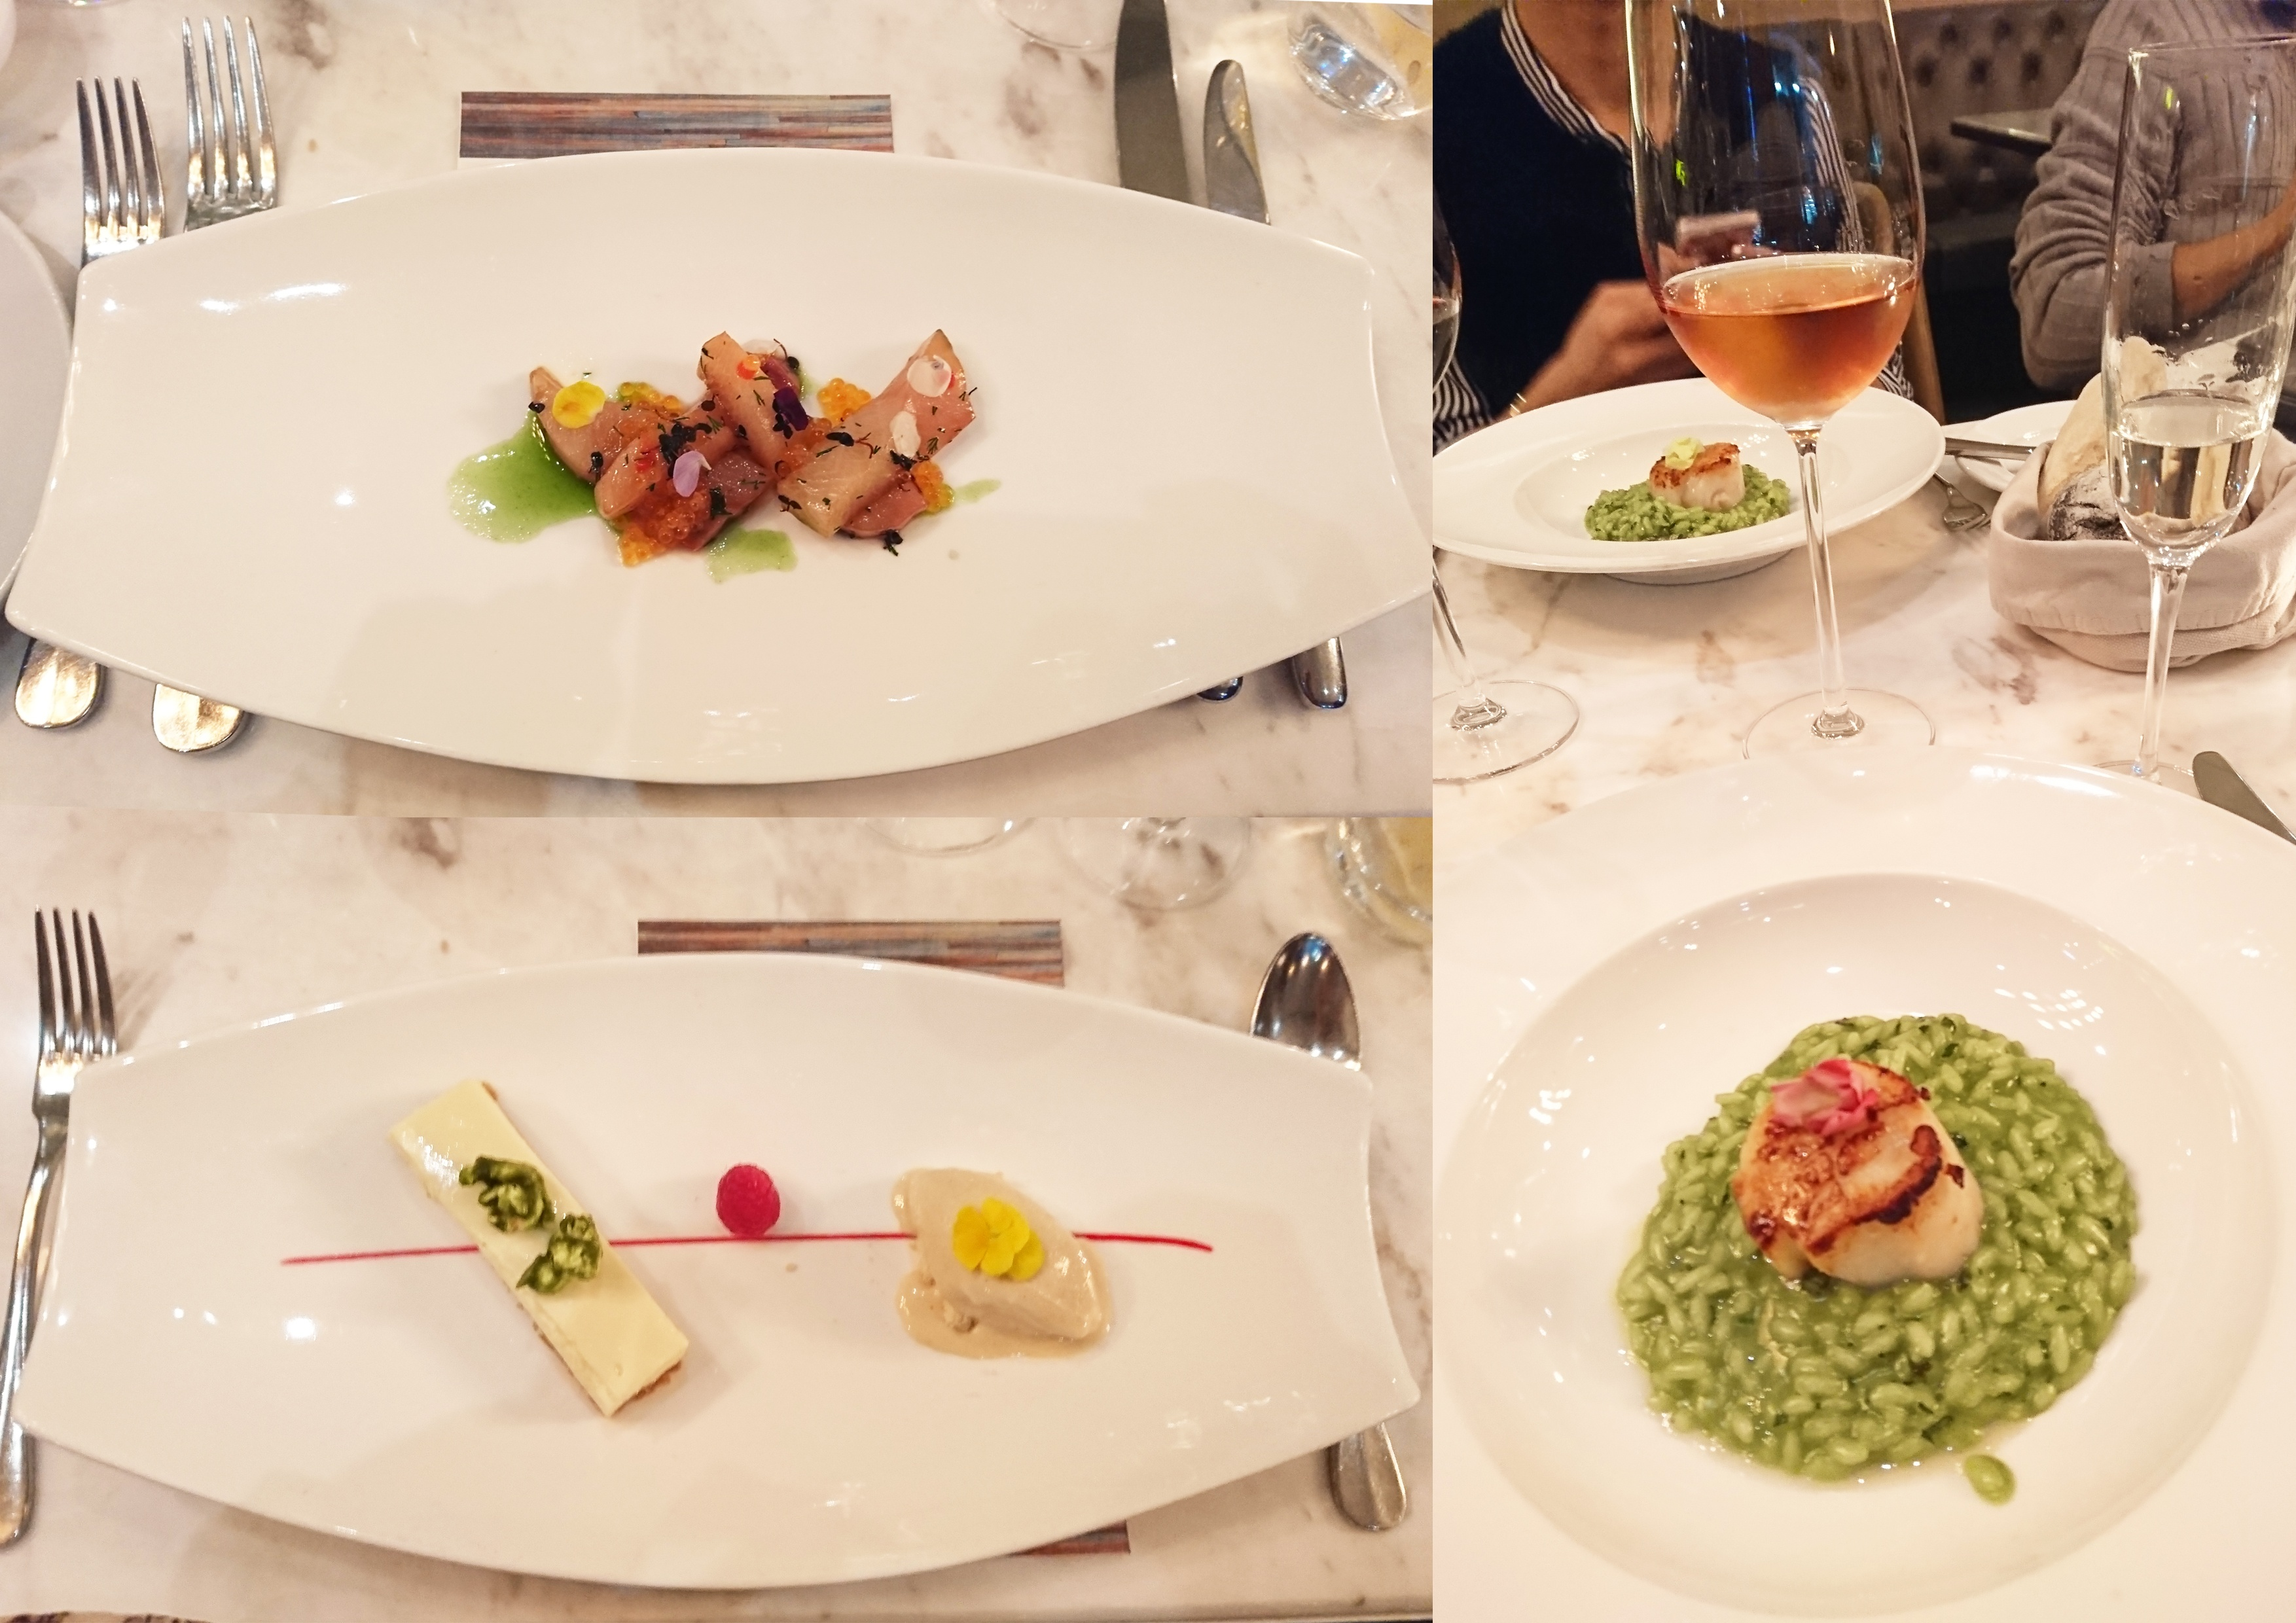 Three Course dinner at Town Restaraunt for Dine for Change